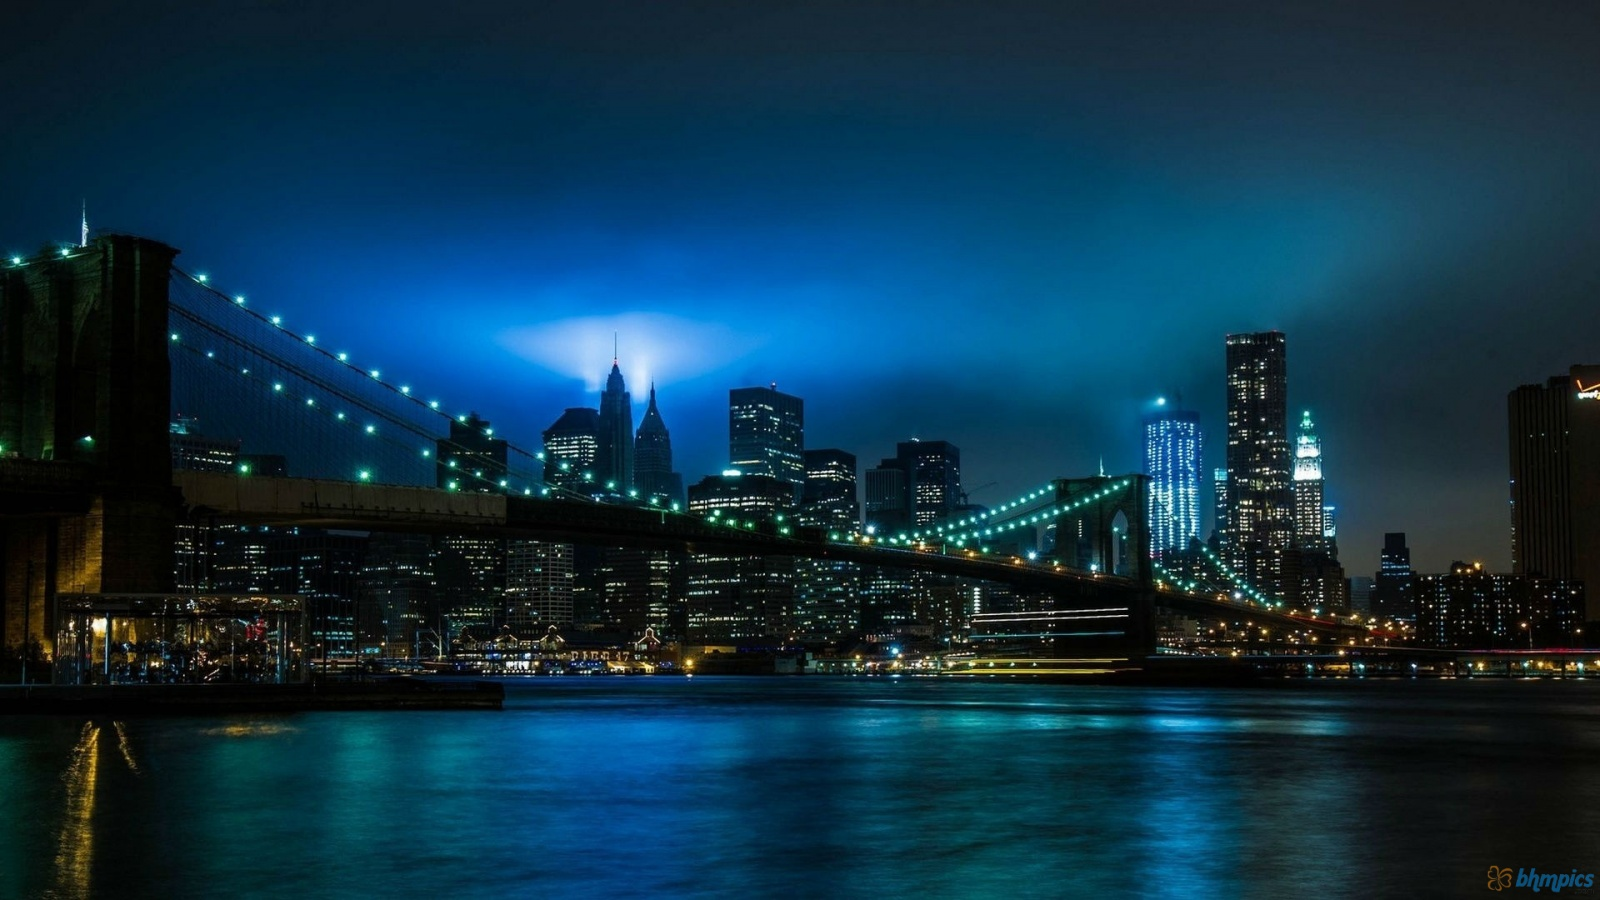 Free Download New York At Night Wallpaper 1600x900 For Your Desktop Mobile Tablet Explore 74 Nyc At Night Wallpaper City Night Wallpaper Hd New York Wallpaper For Walls City